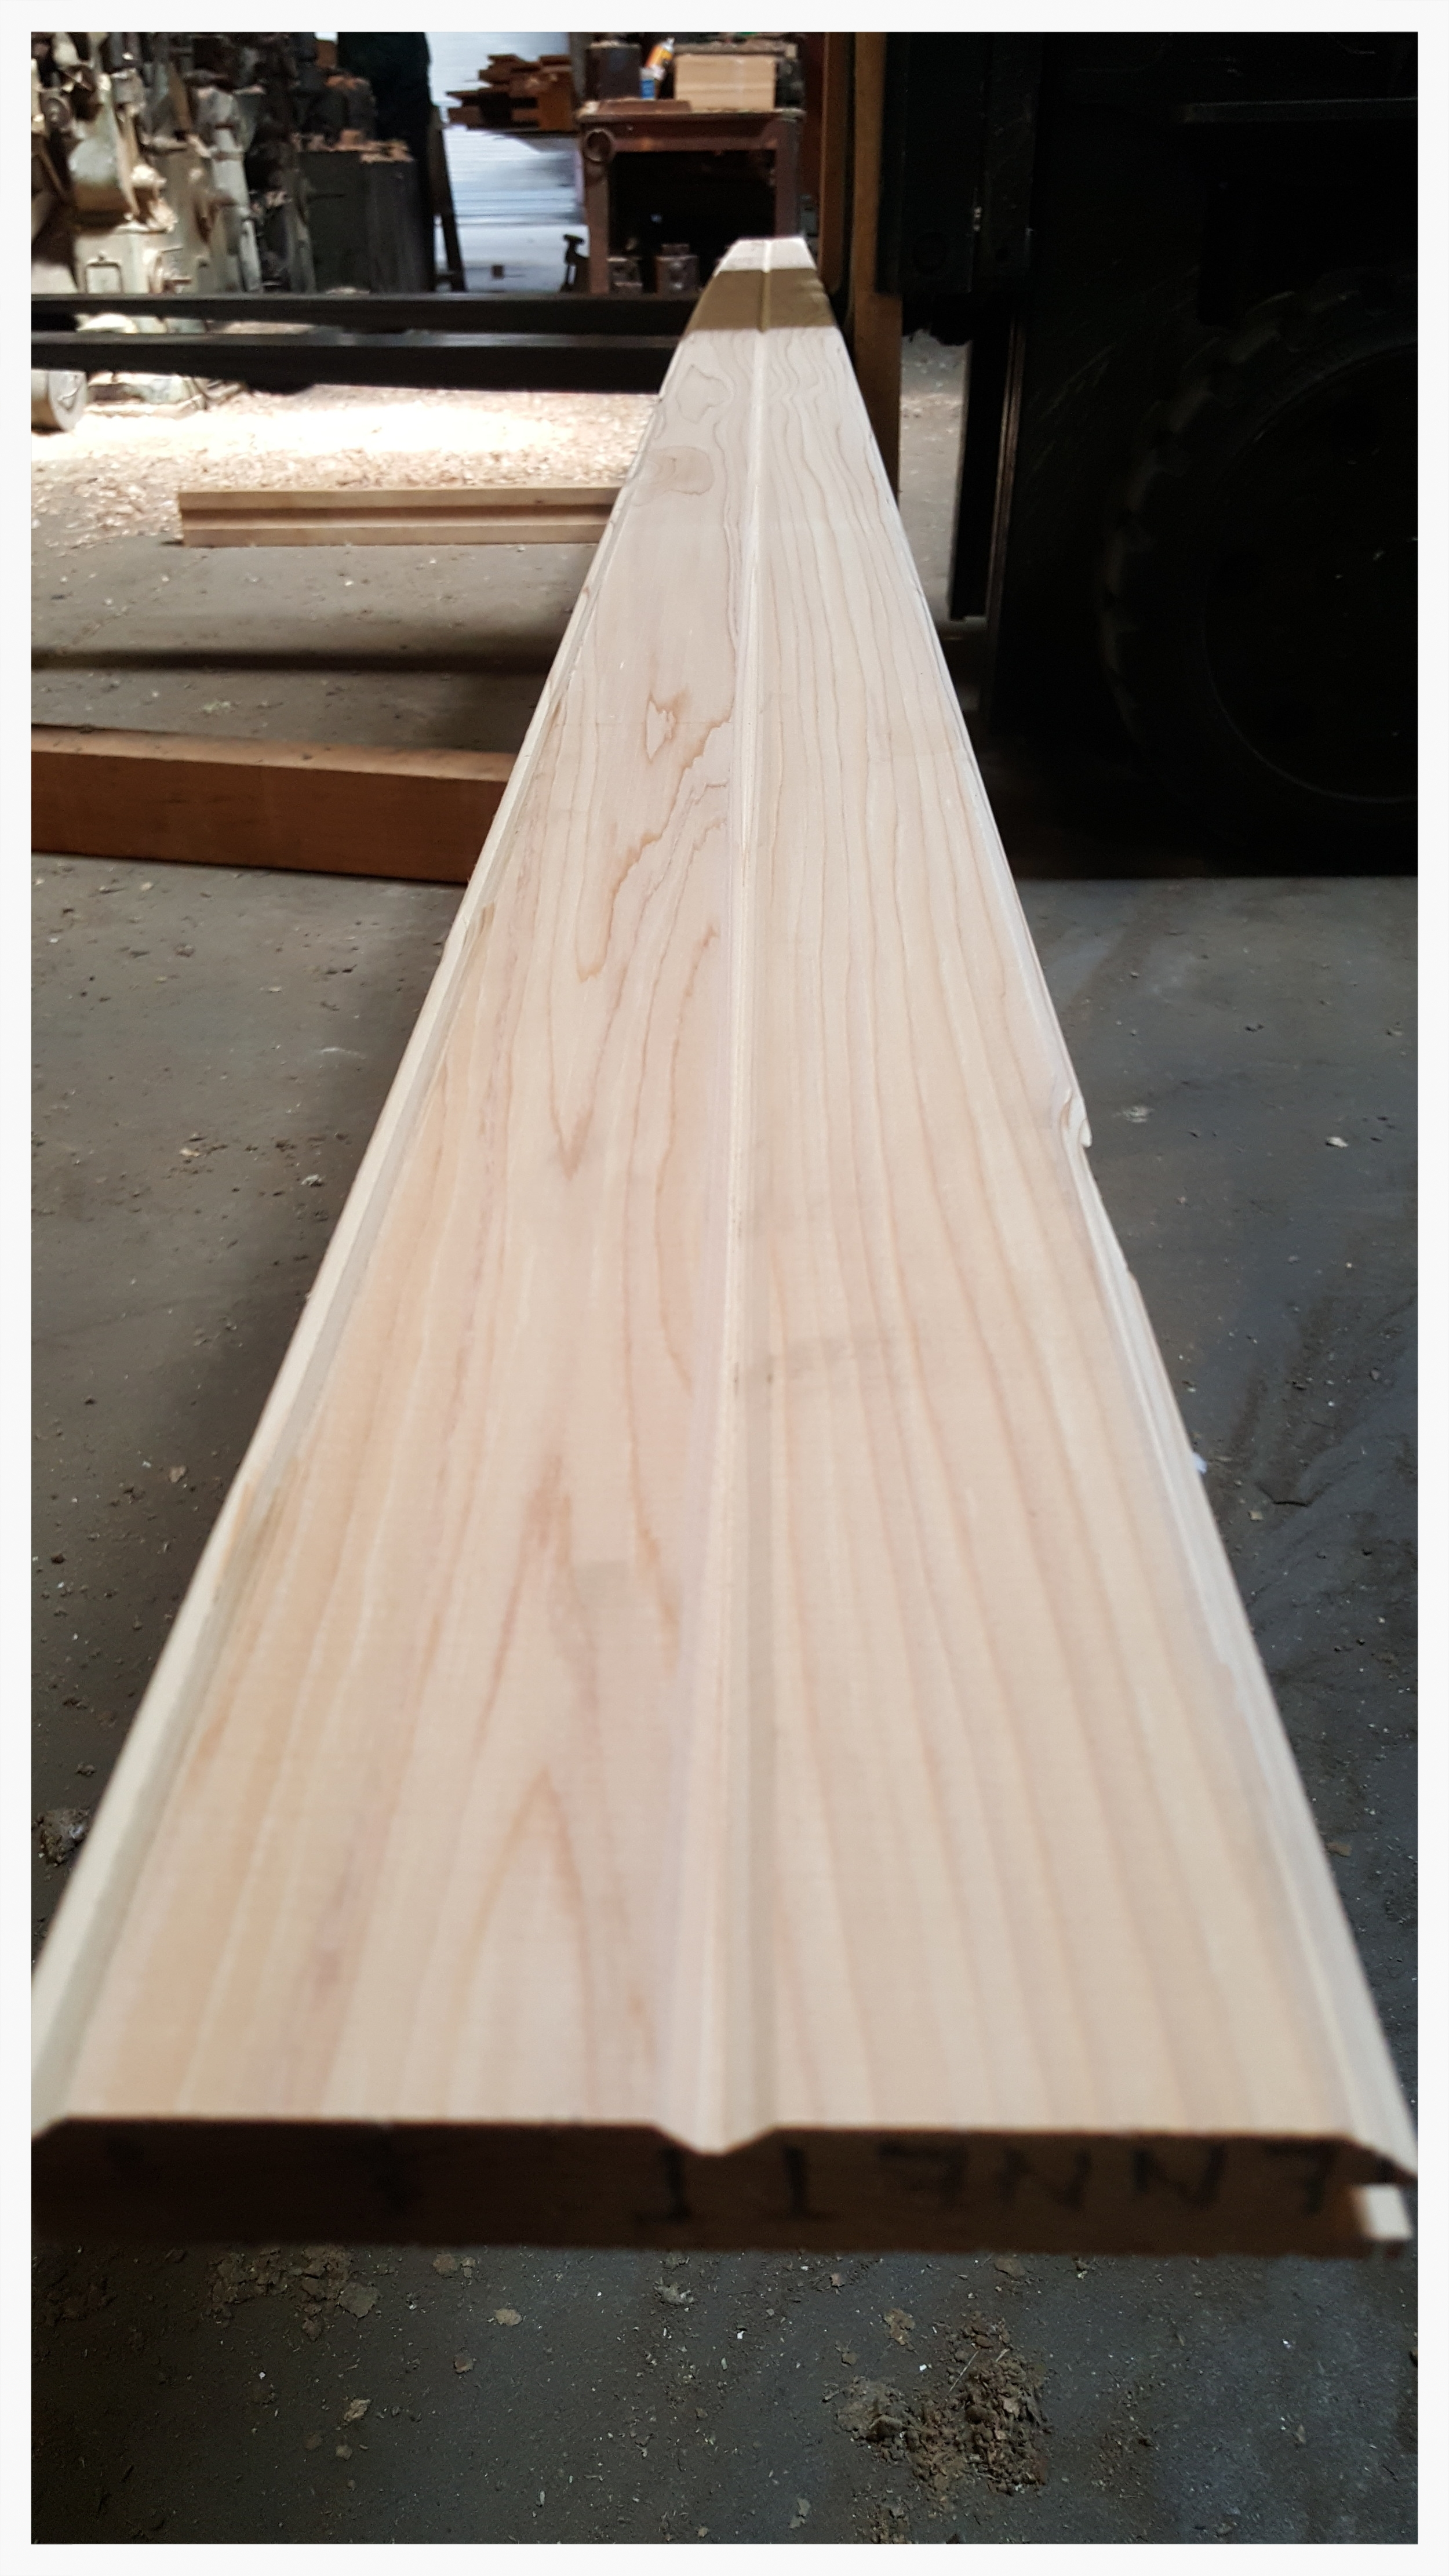 WESTERN RED CEDAR - T&G WITH V-GROOVE  FINISHED PRODUCT BY BDD MILL